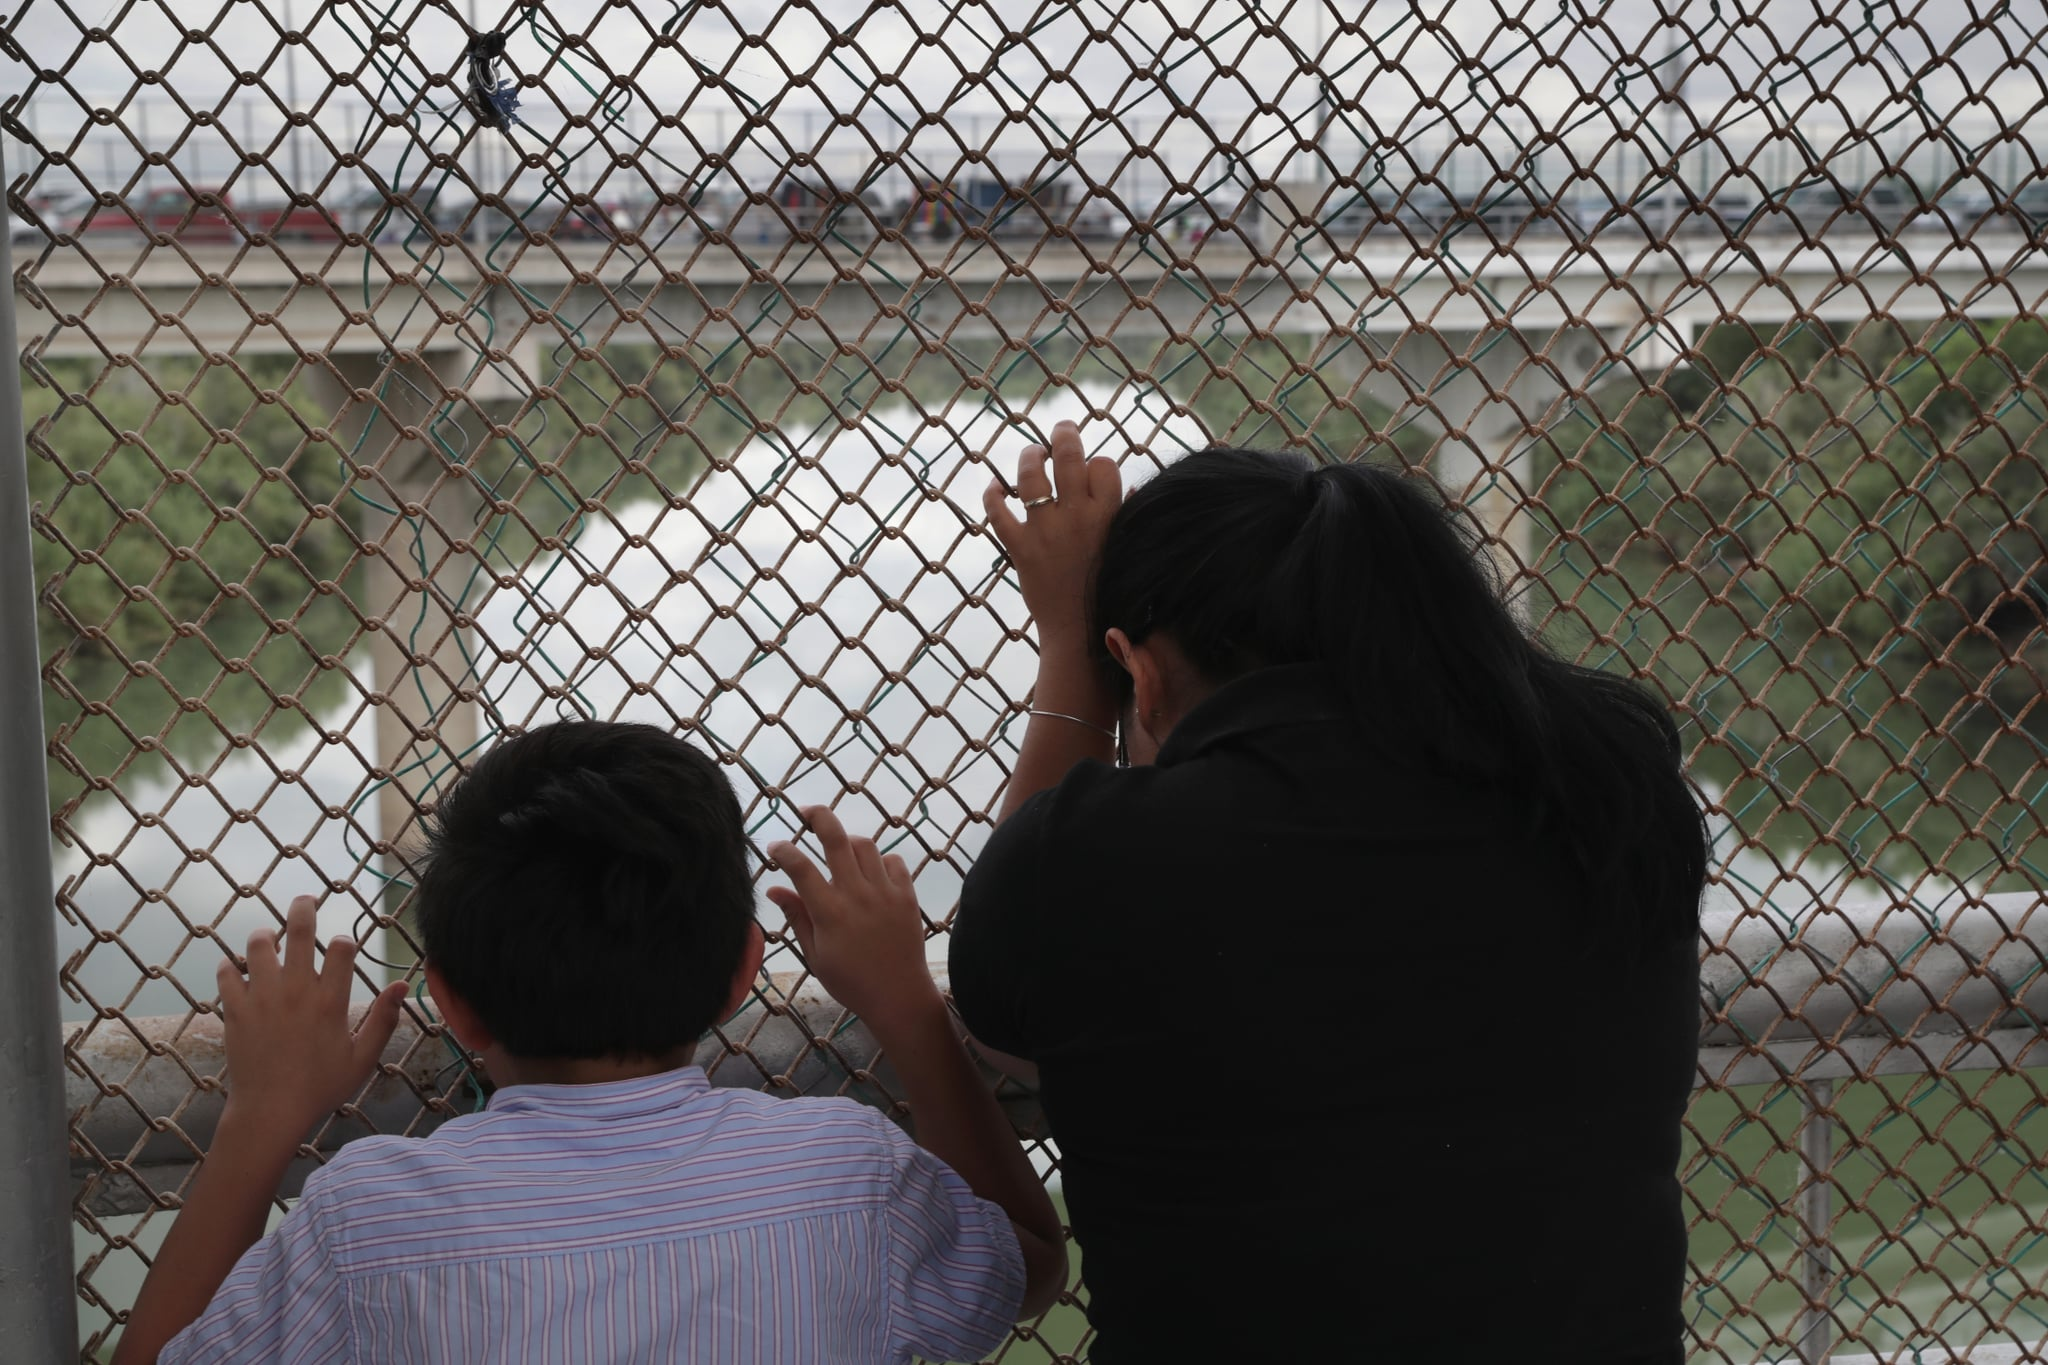 HIDALGO, TX - NOVEMBER 04:  Nicaraguan asylum seekers wait for entry into the United States while on the international bridge on November 4, 2018 in Hidalgo, Texas. President Trump ordered U.S. troops to border areas days before the midterm elections and weeks before the possible arrival of a caravan of immigrants from Central America.  (Photo by John Moore/Getty Images)